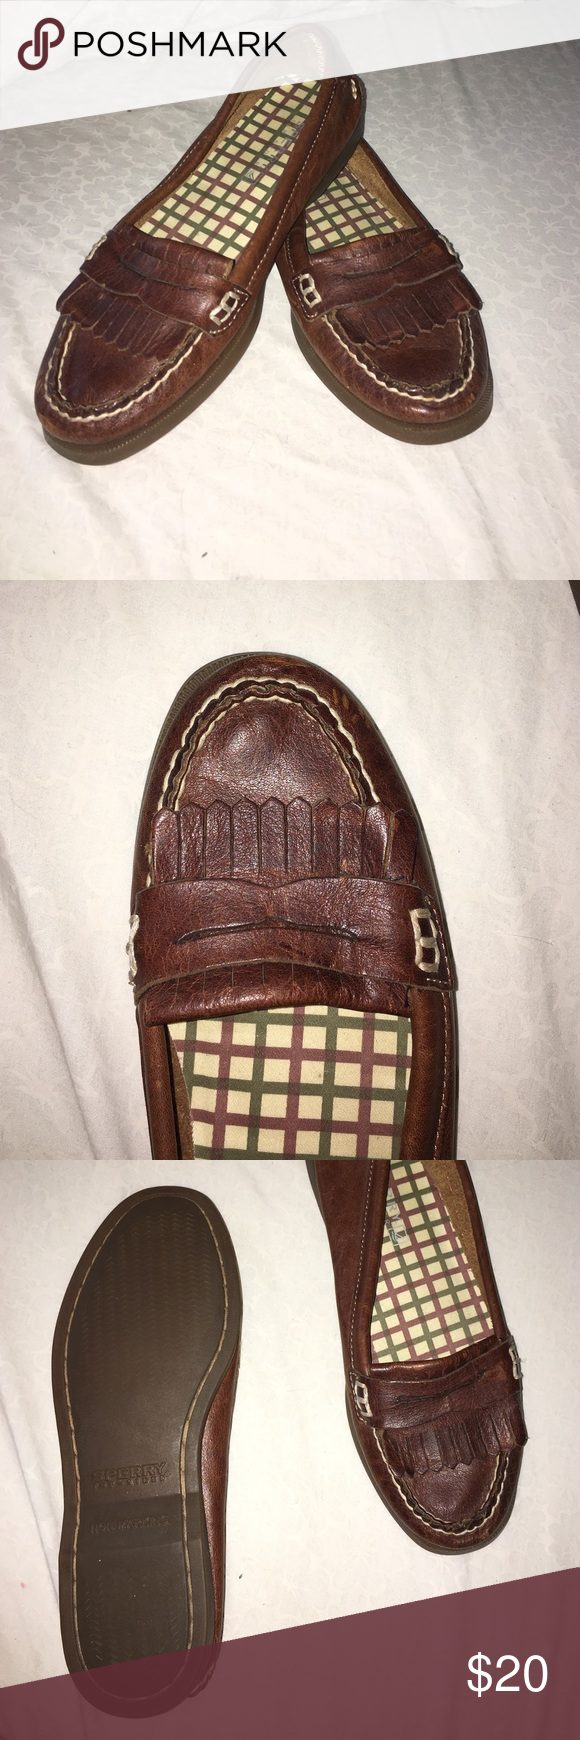 Super cute Sperry's!!! Like new sperrys look like loafers really cute on and comfortable to walk in but look barely used! Ask any questions  Sperry Top-Sider Shoes Flats & Loafers